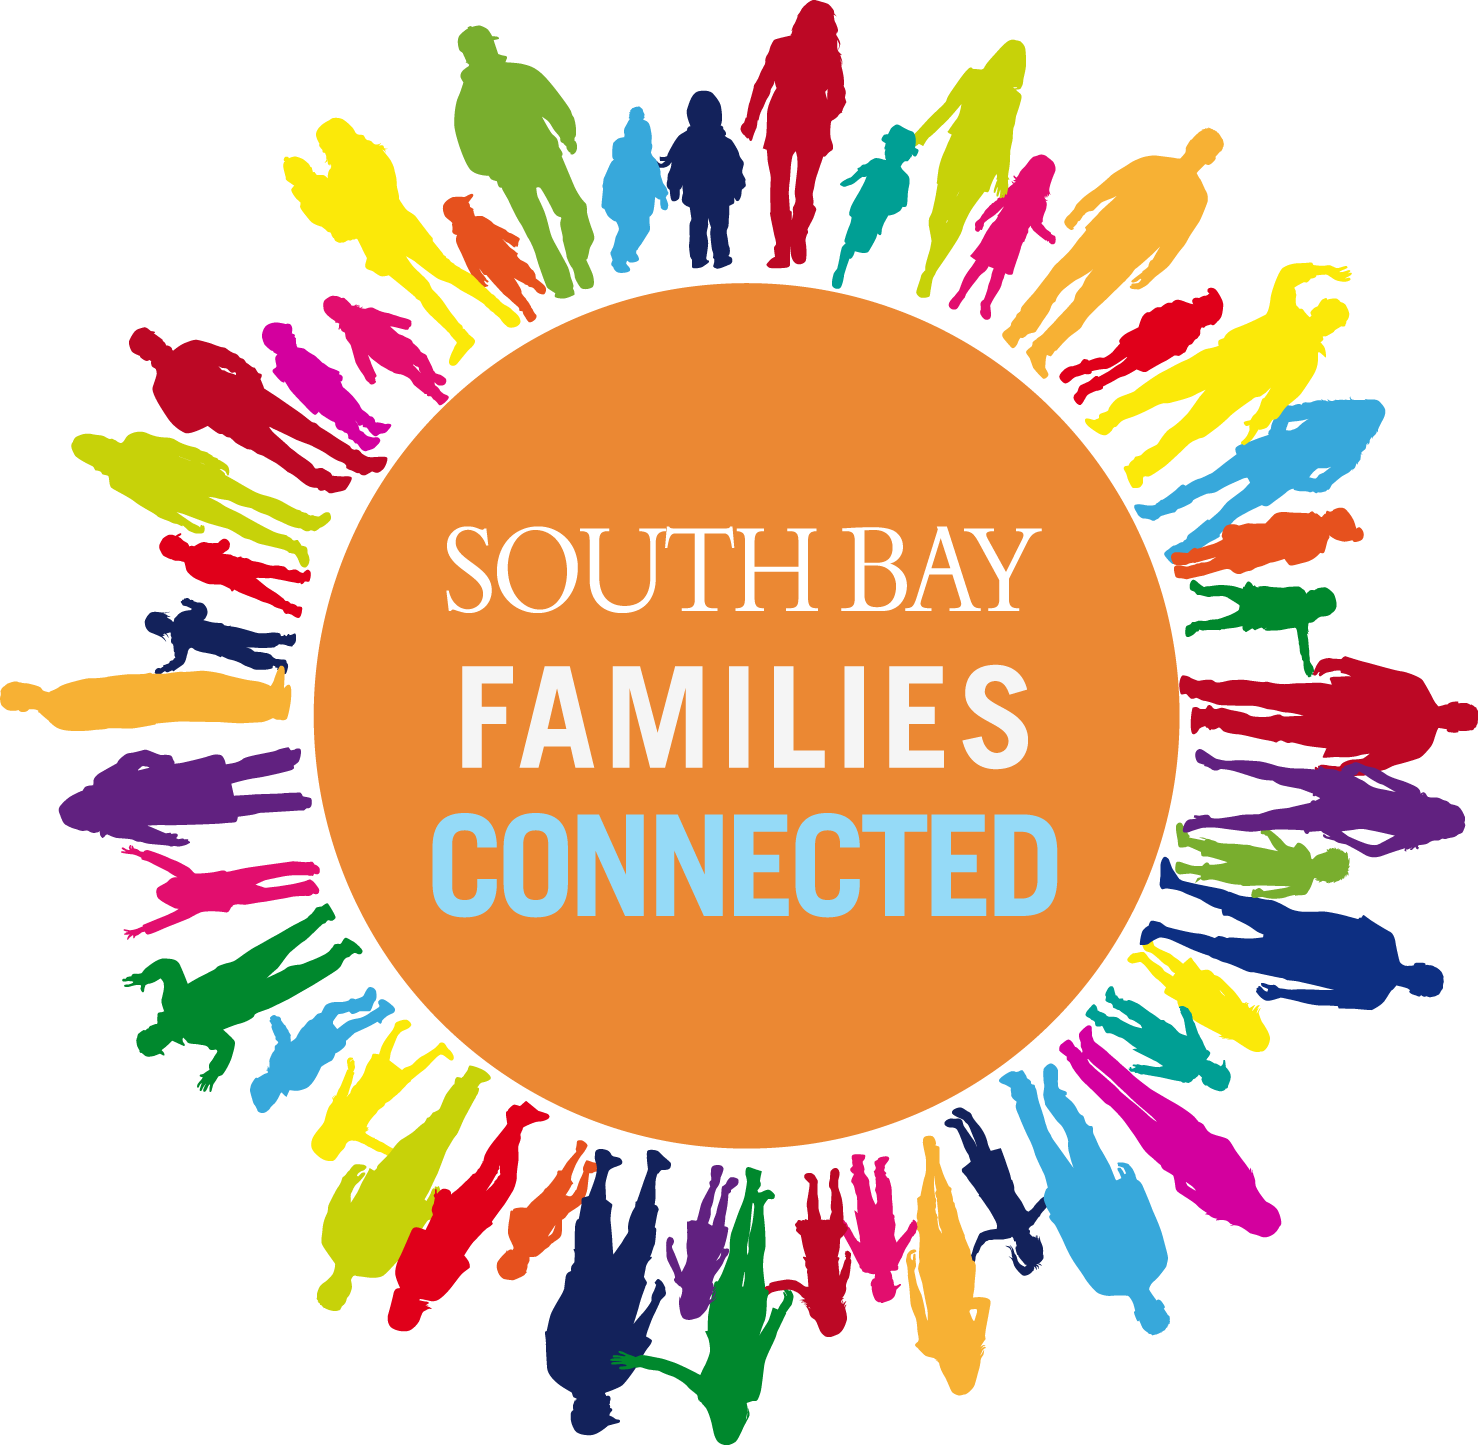 South Bay Families Connected